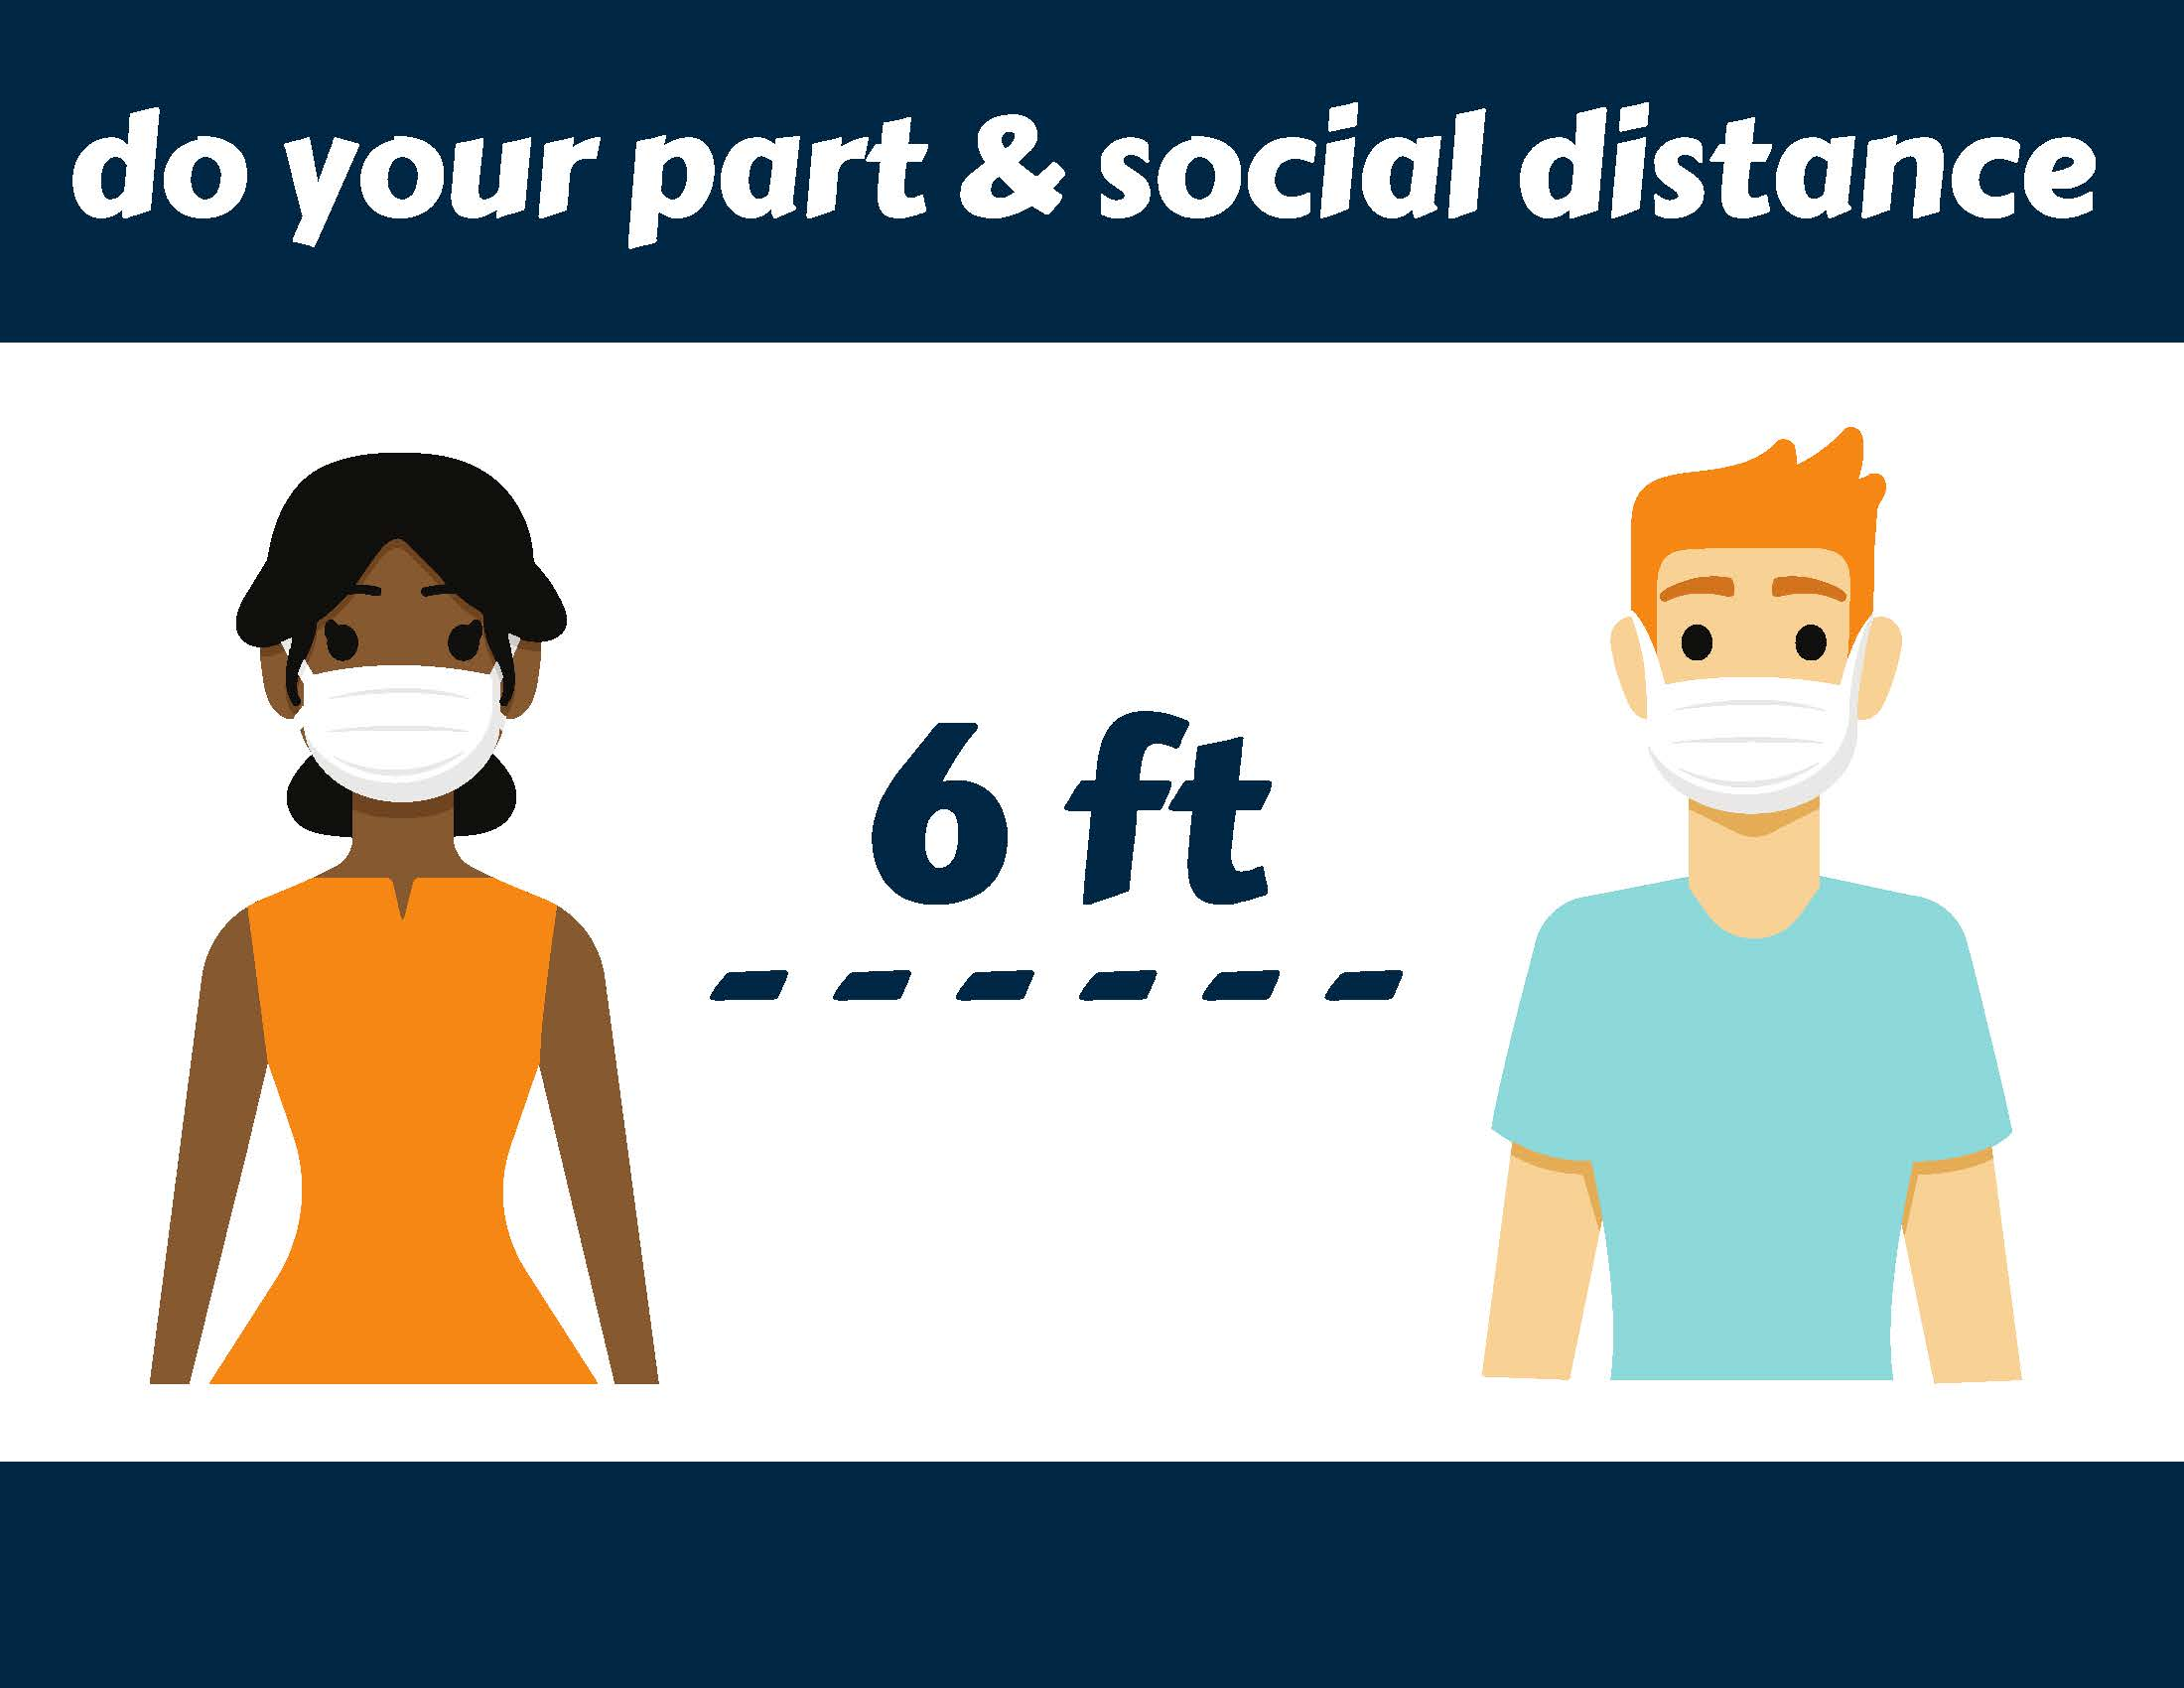 Do your part and social distance, 6 feet apart